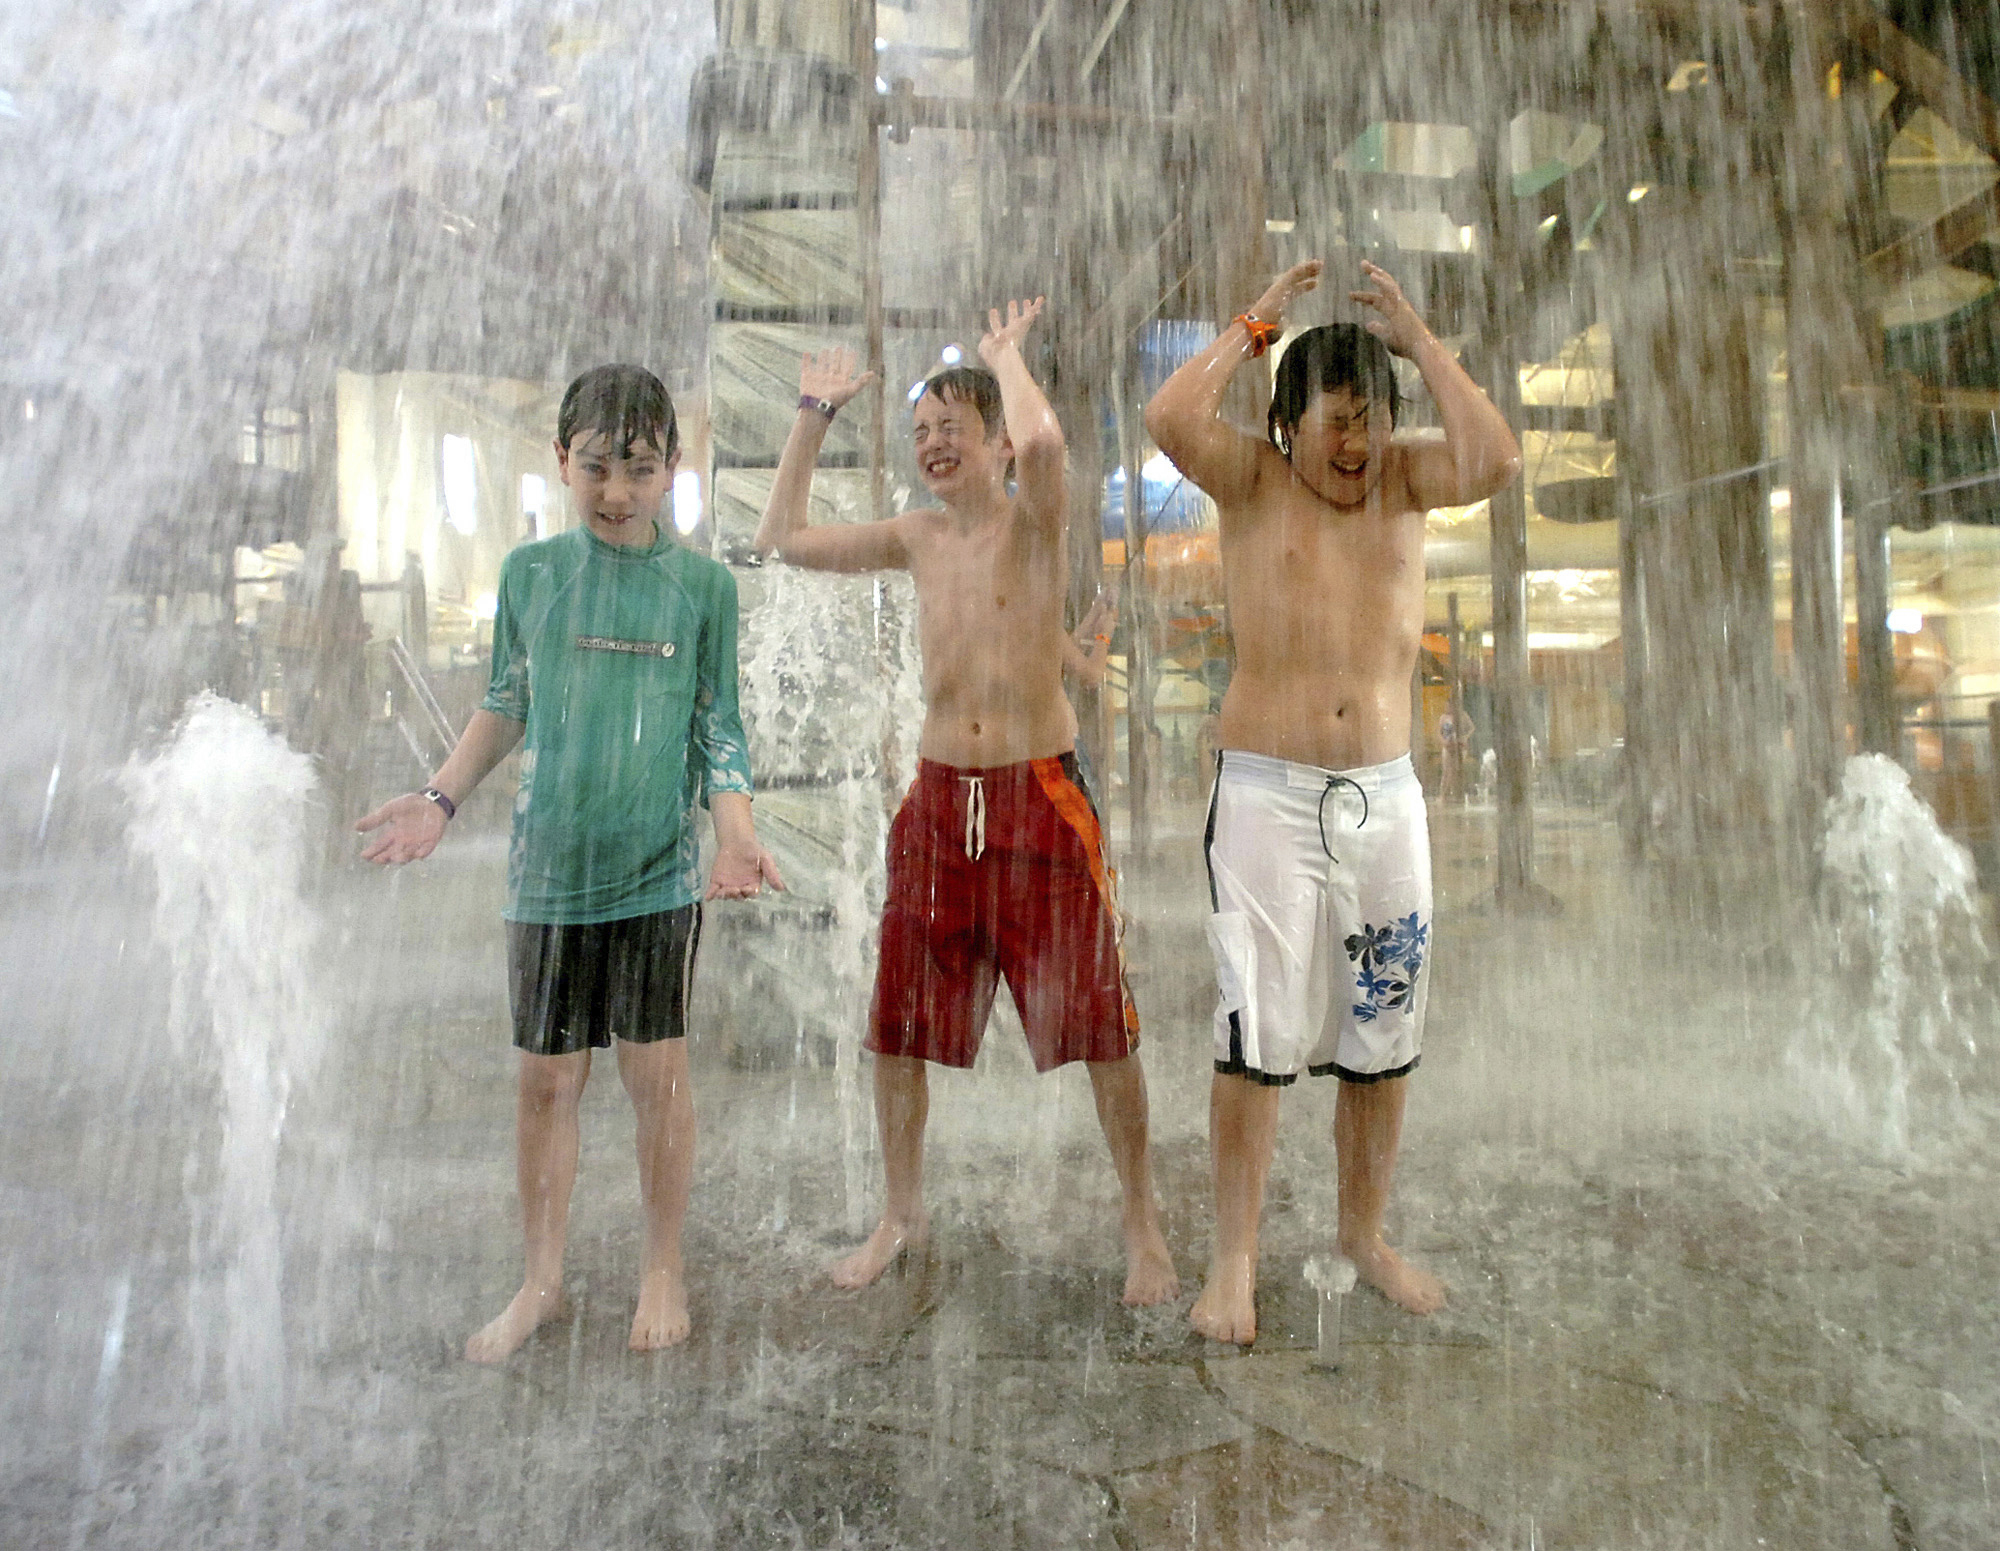 In this Oct. 26, 2005, file photo, Collin Bevan (left), Keith Casares (center), and Jared Kubalak, right, all from Cresco, Pa., play under a rush of water at Great Wolf Lodge in Scotrun, Pa.